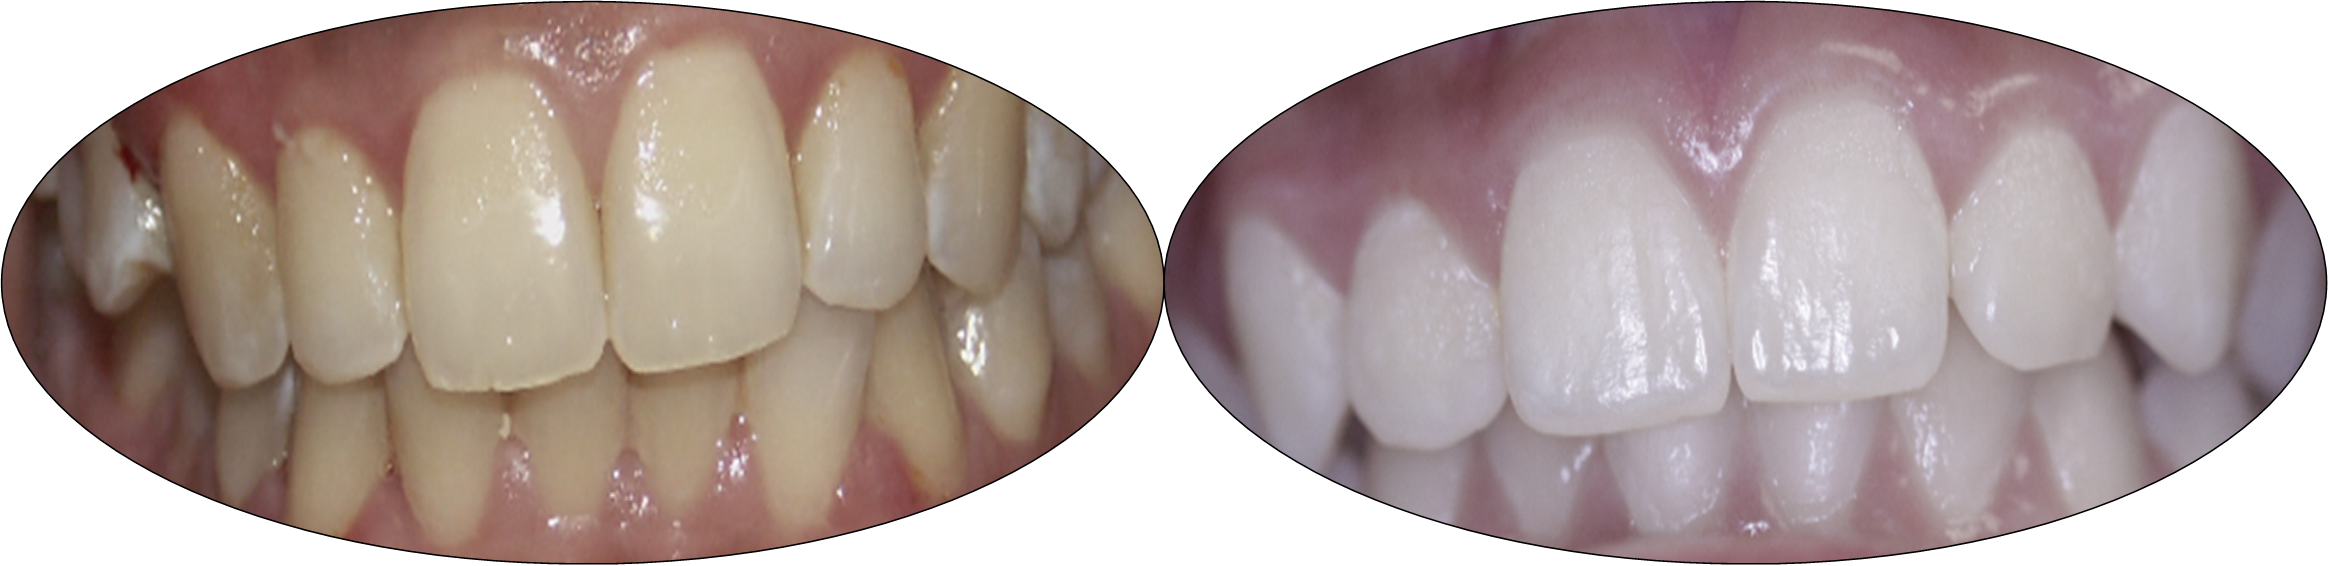 Smile gallery images, before and after Invisalign, patient three